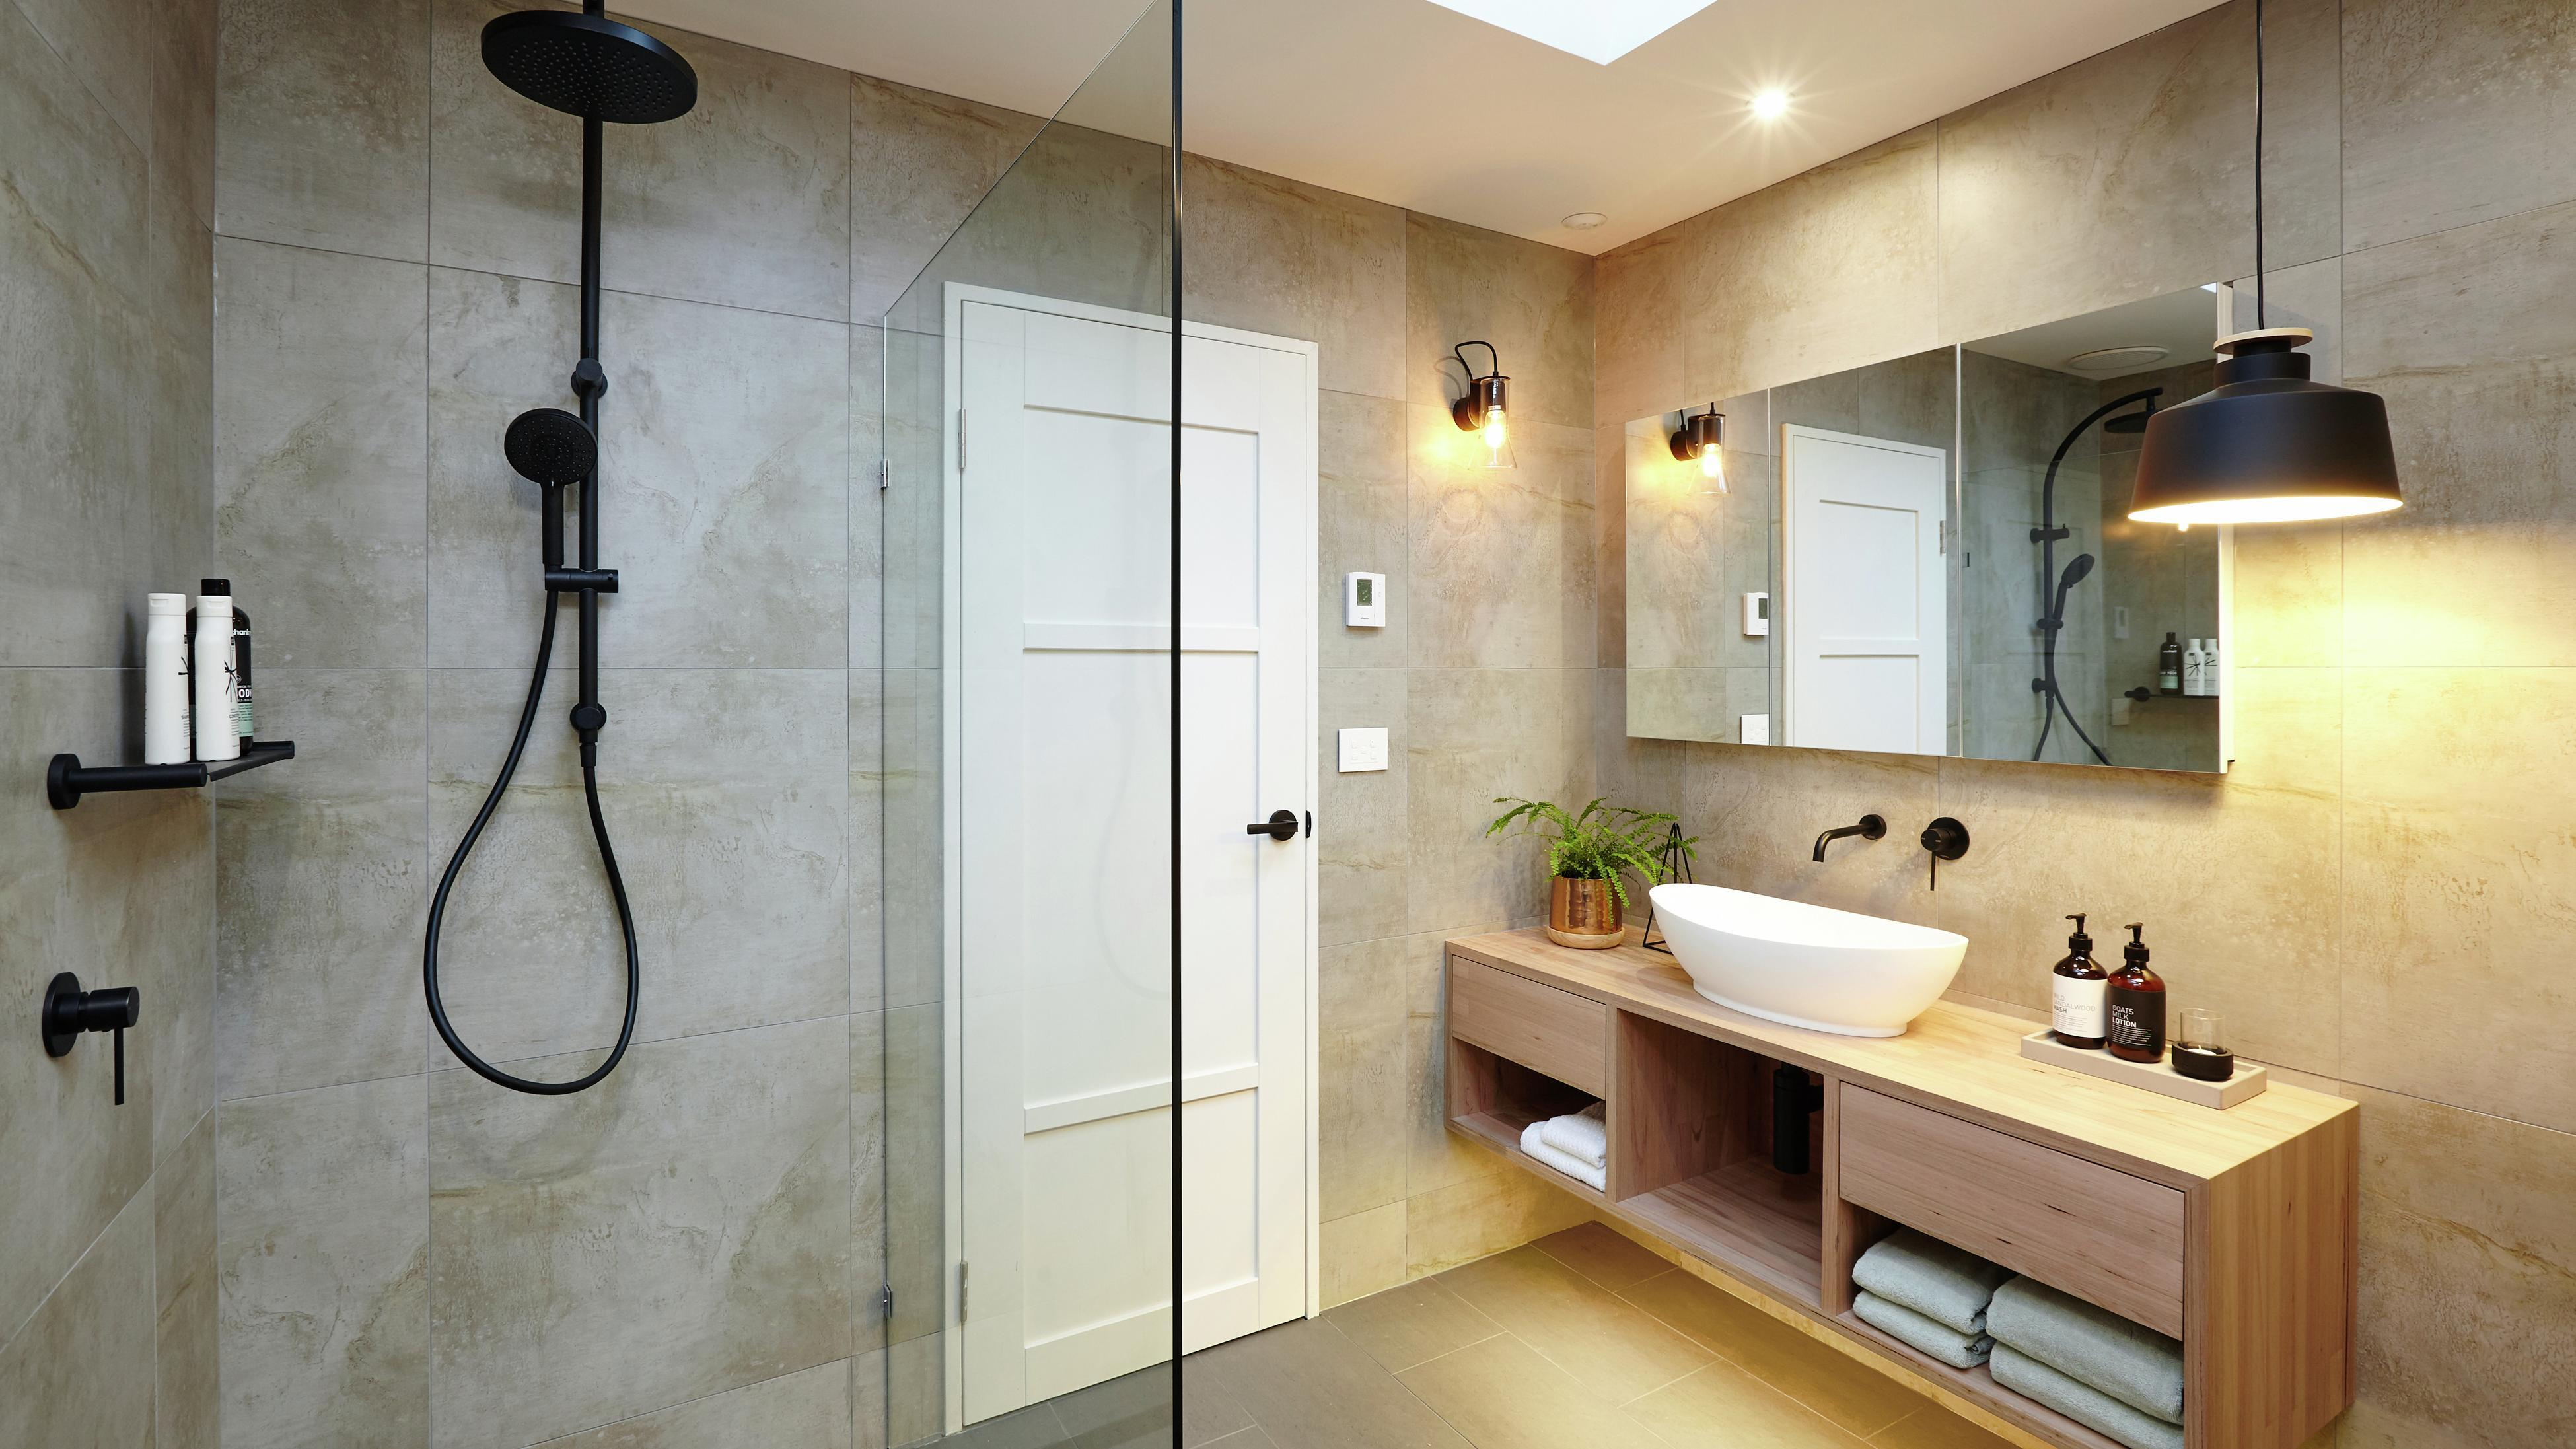 Bathroom with earthy tiles and black tapware/accessories.